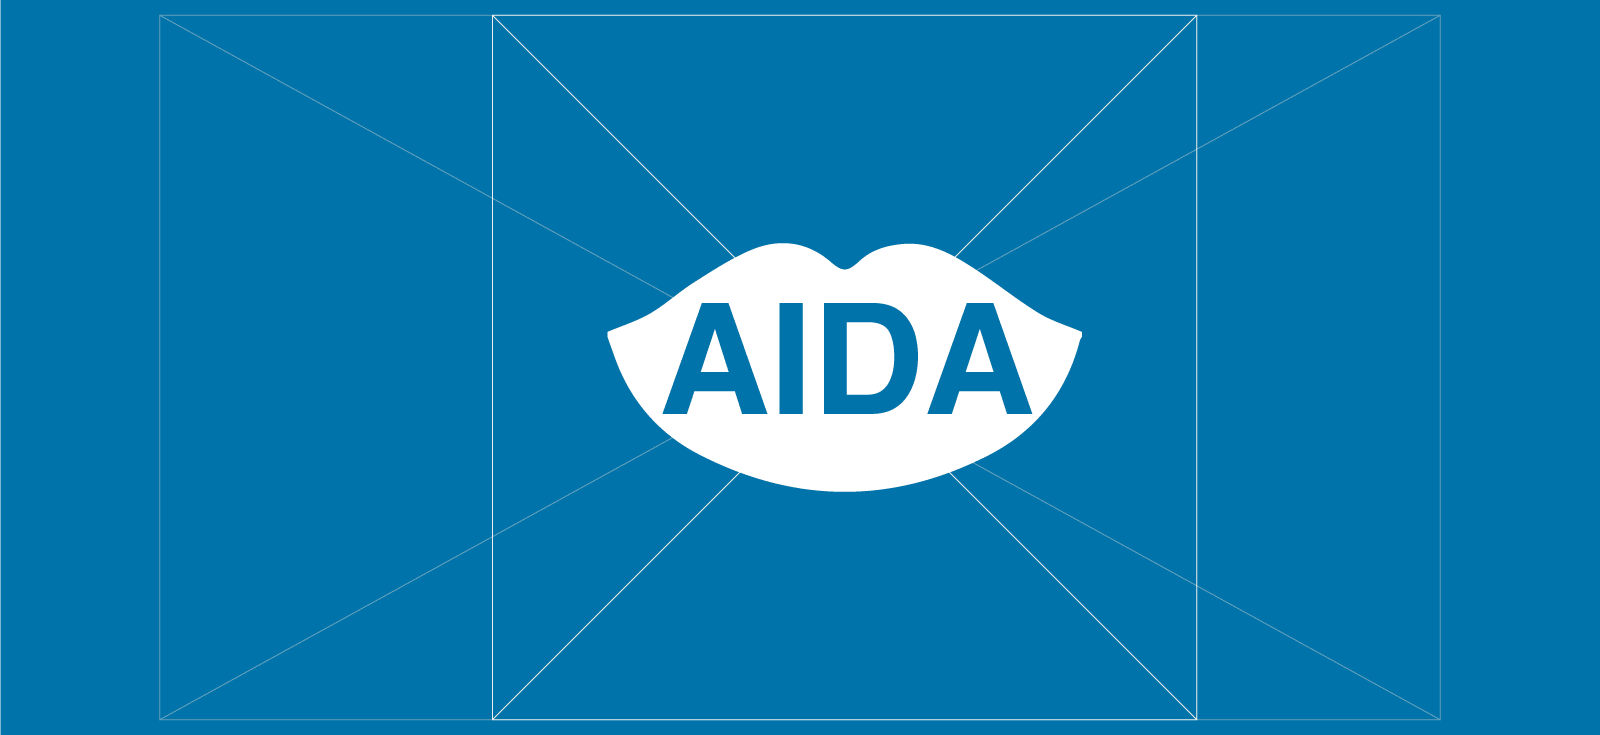 AIDA: Attention, Interest, Desire, Action